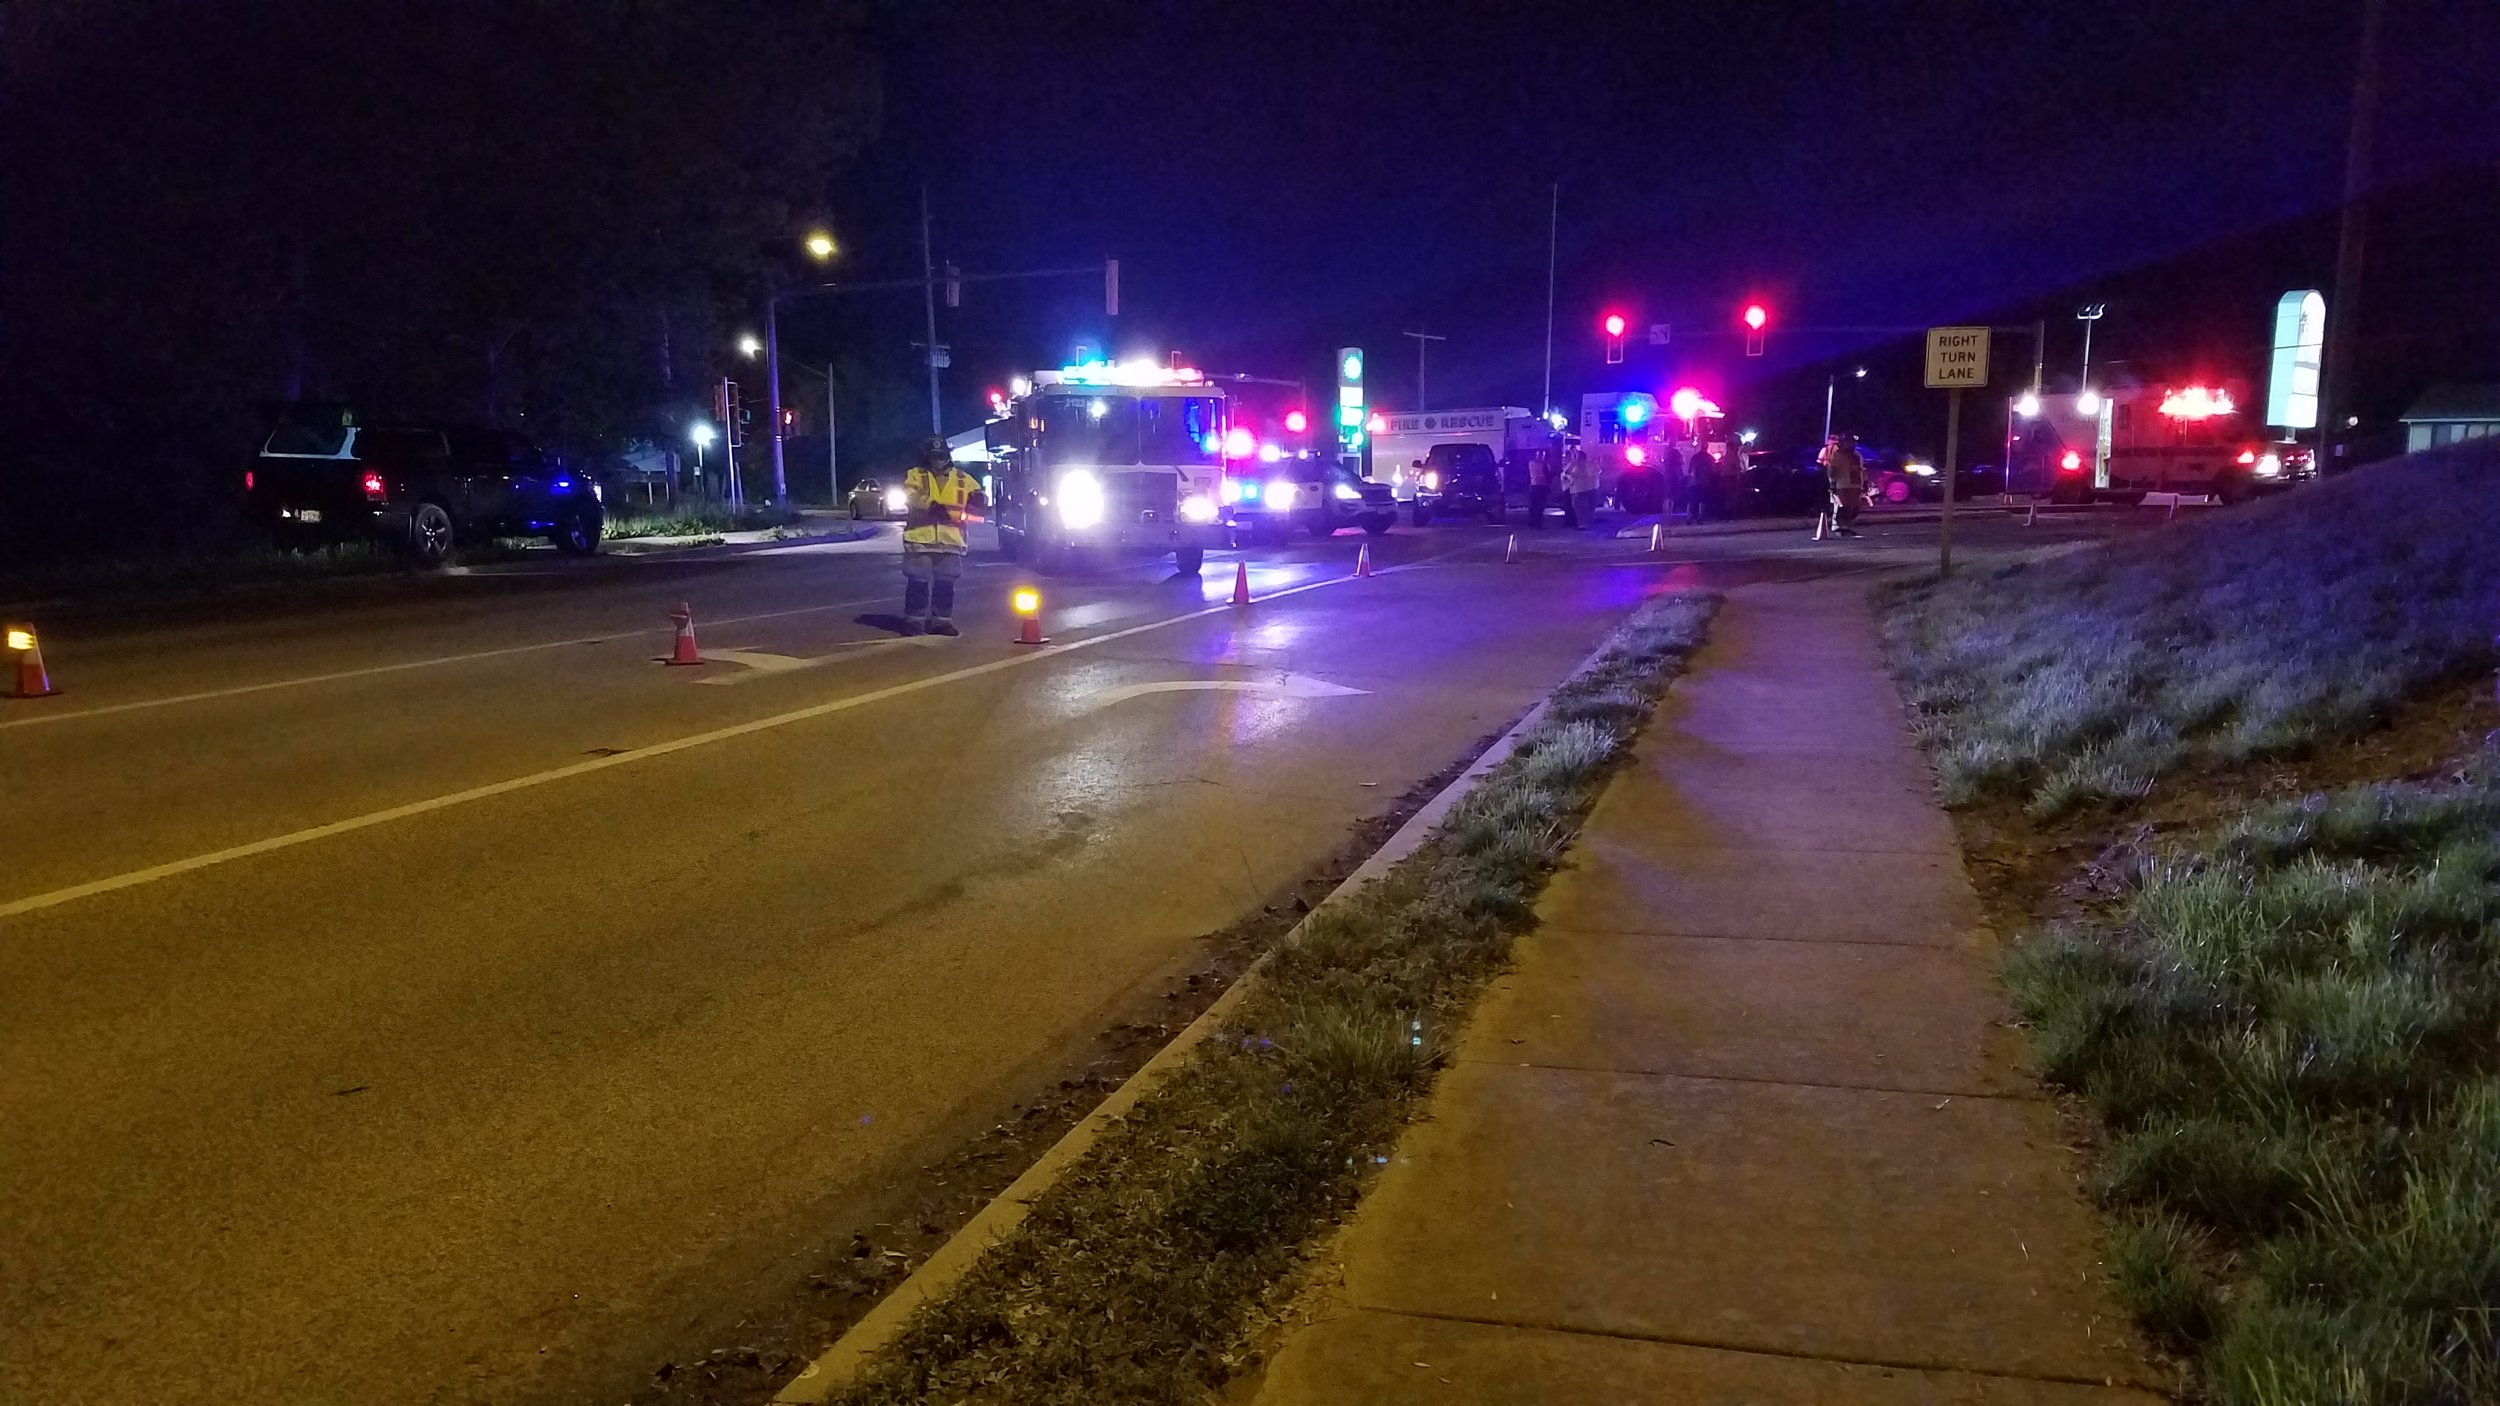 On 05/06/2019, East Side Fire responded for a vehicle accident with injuries. Firefighters assisted with traffic control until Illinois State Police completed their accident investigation.